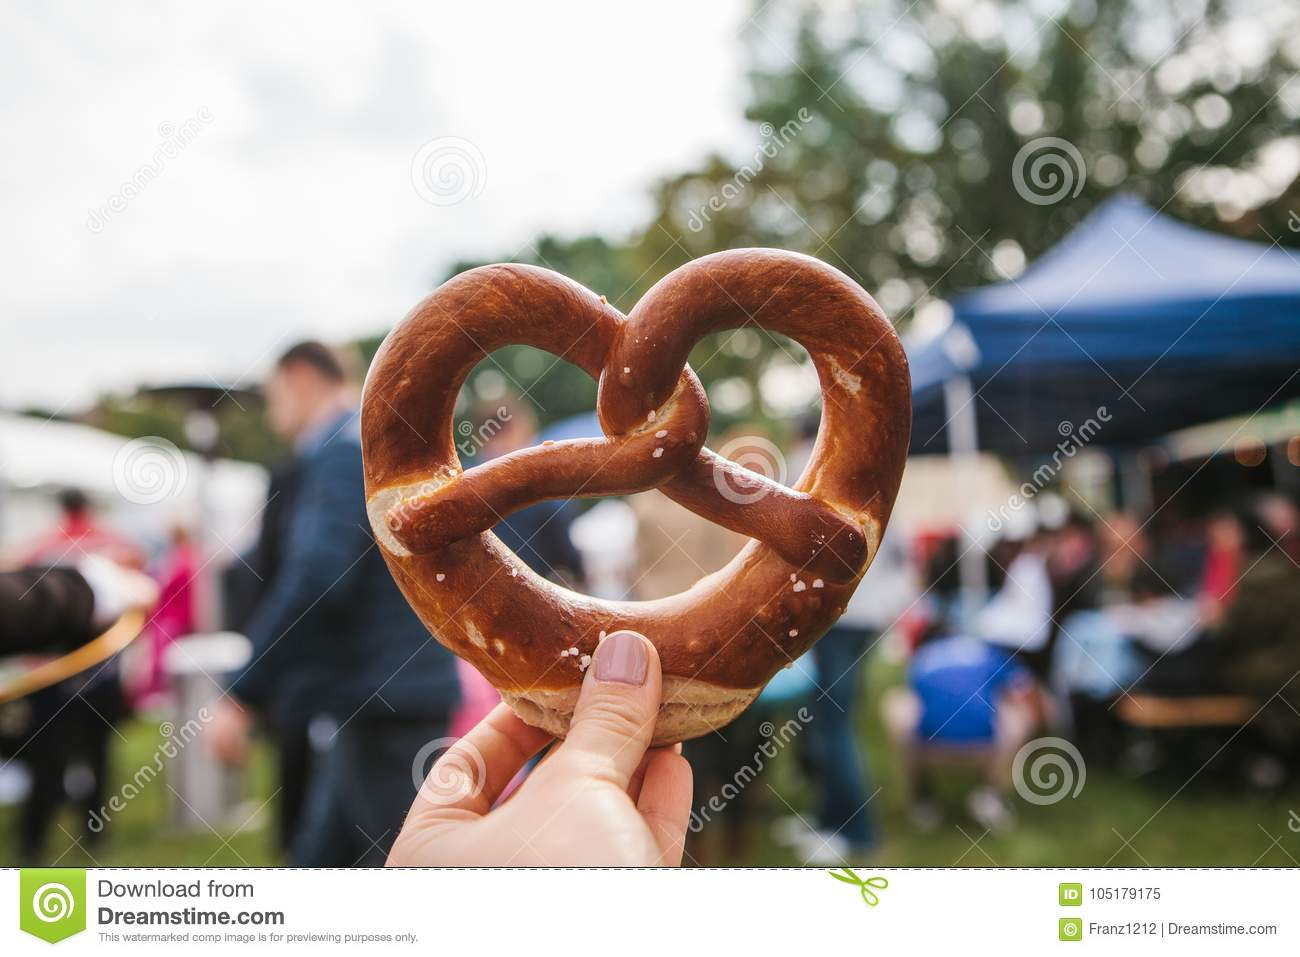 Celebration of the famous German beer festival Oktoberfest. The person holds in his hand a traditional pretzel called